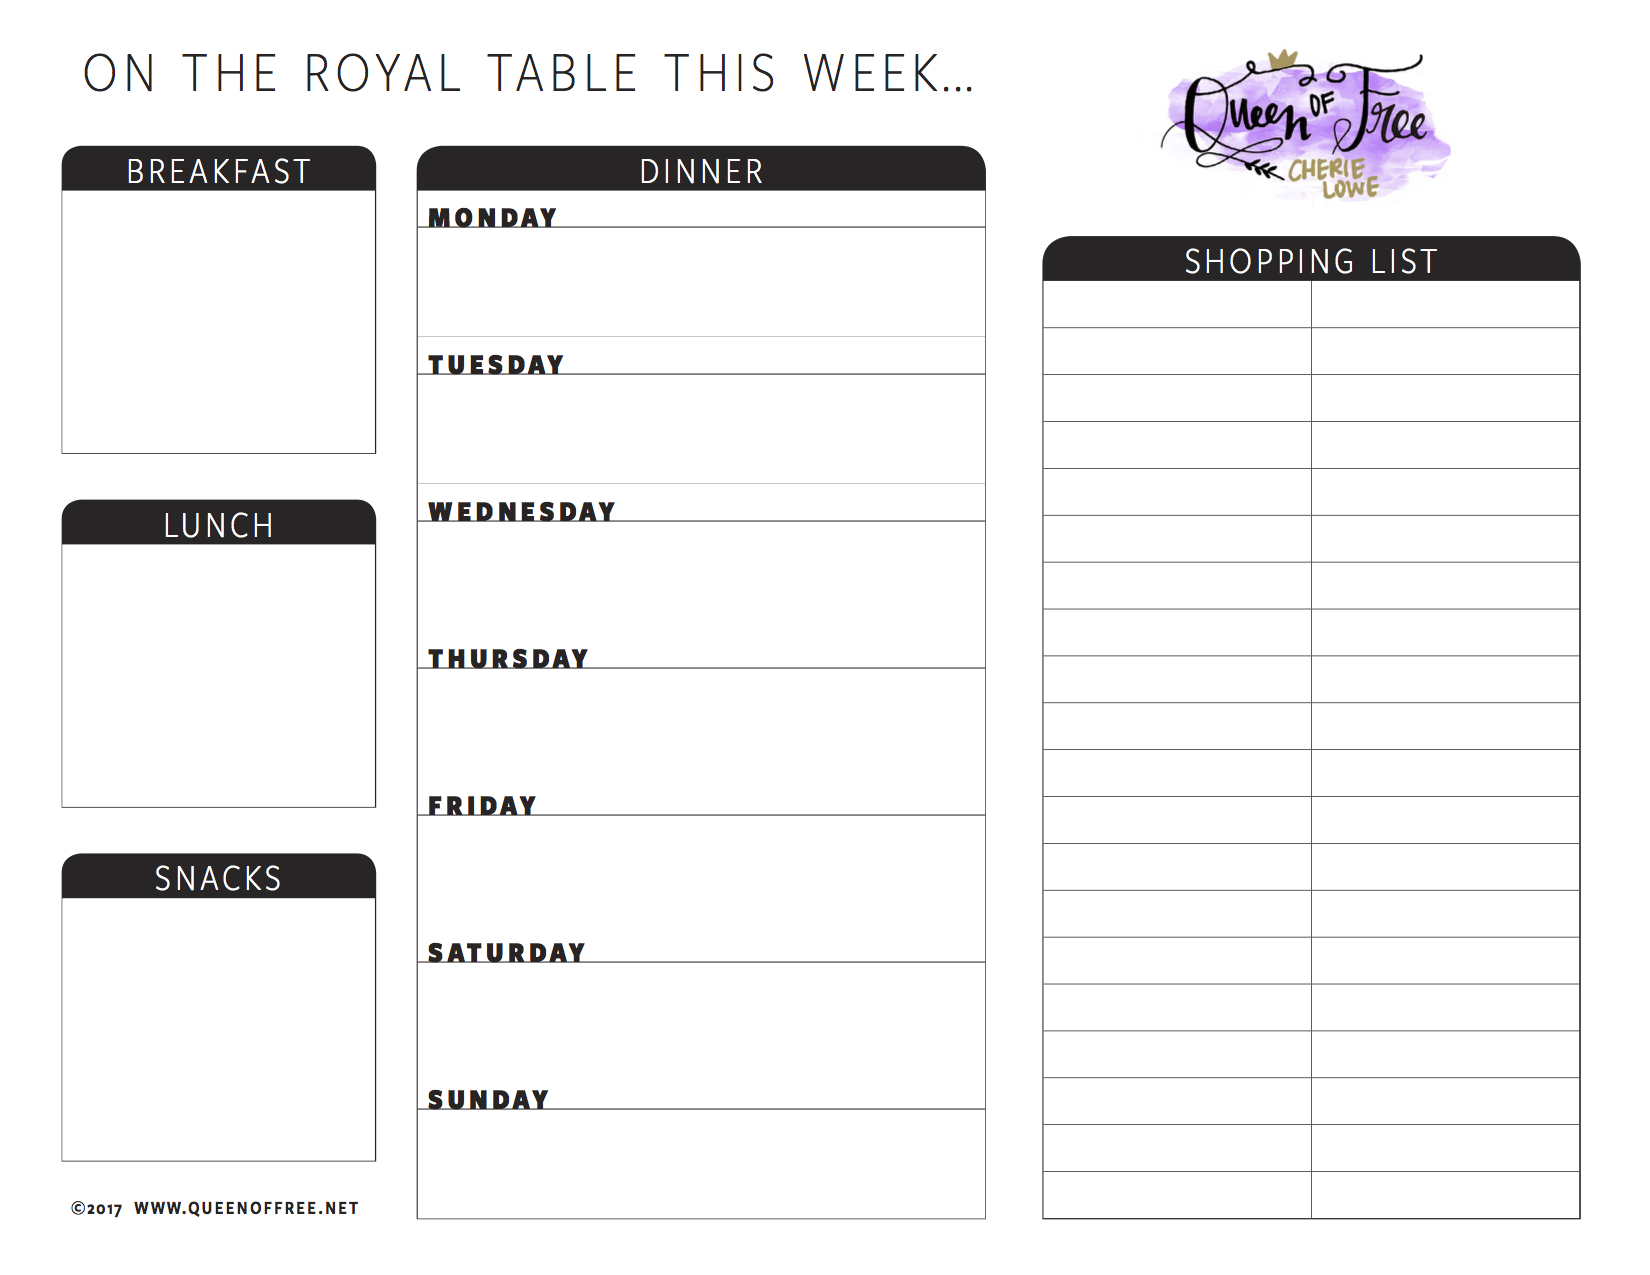 photograph about Free Printable Weekly Meal Planner called All Refreshing: No cost Printable Evening meal Planner Your self Can Edit - Queen of